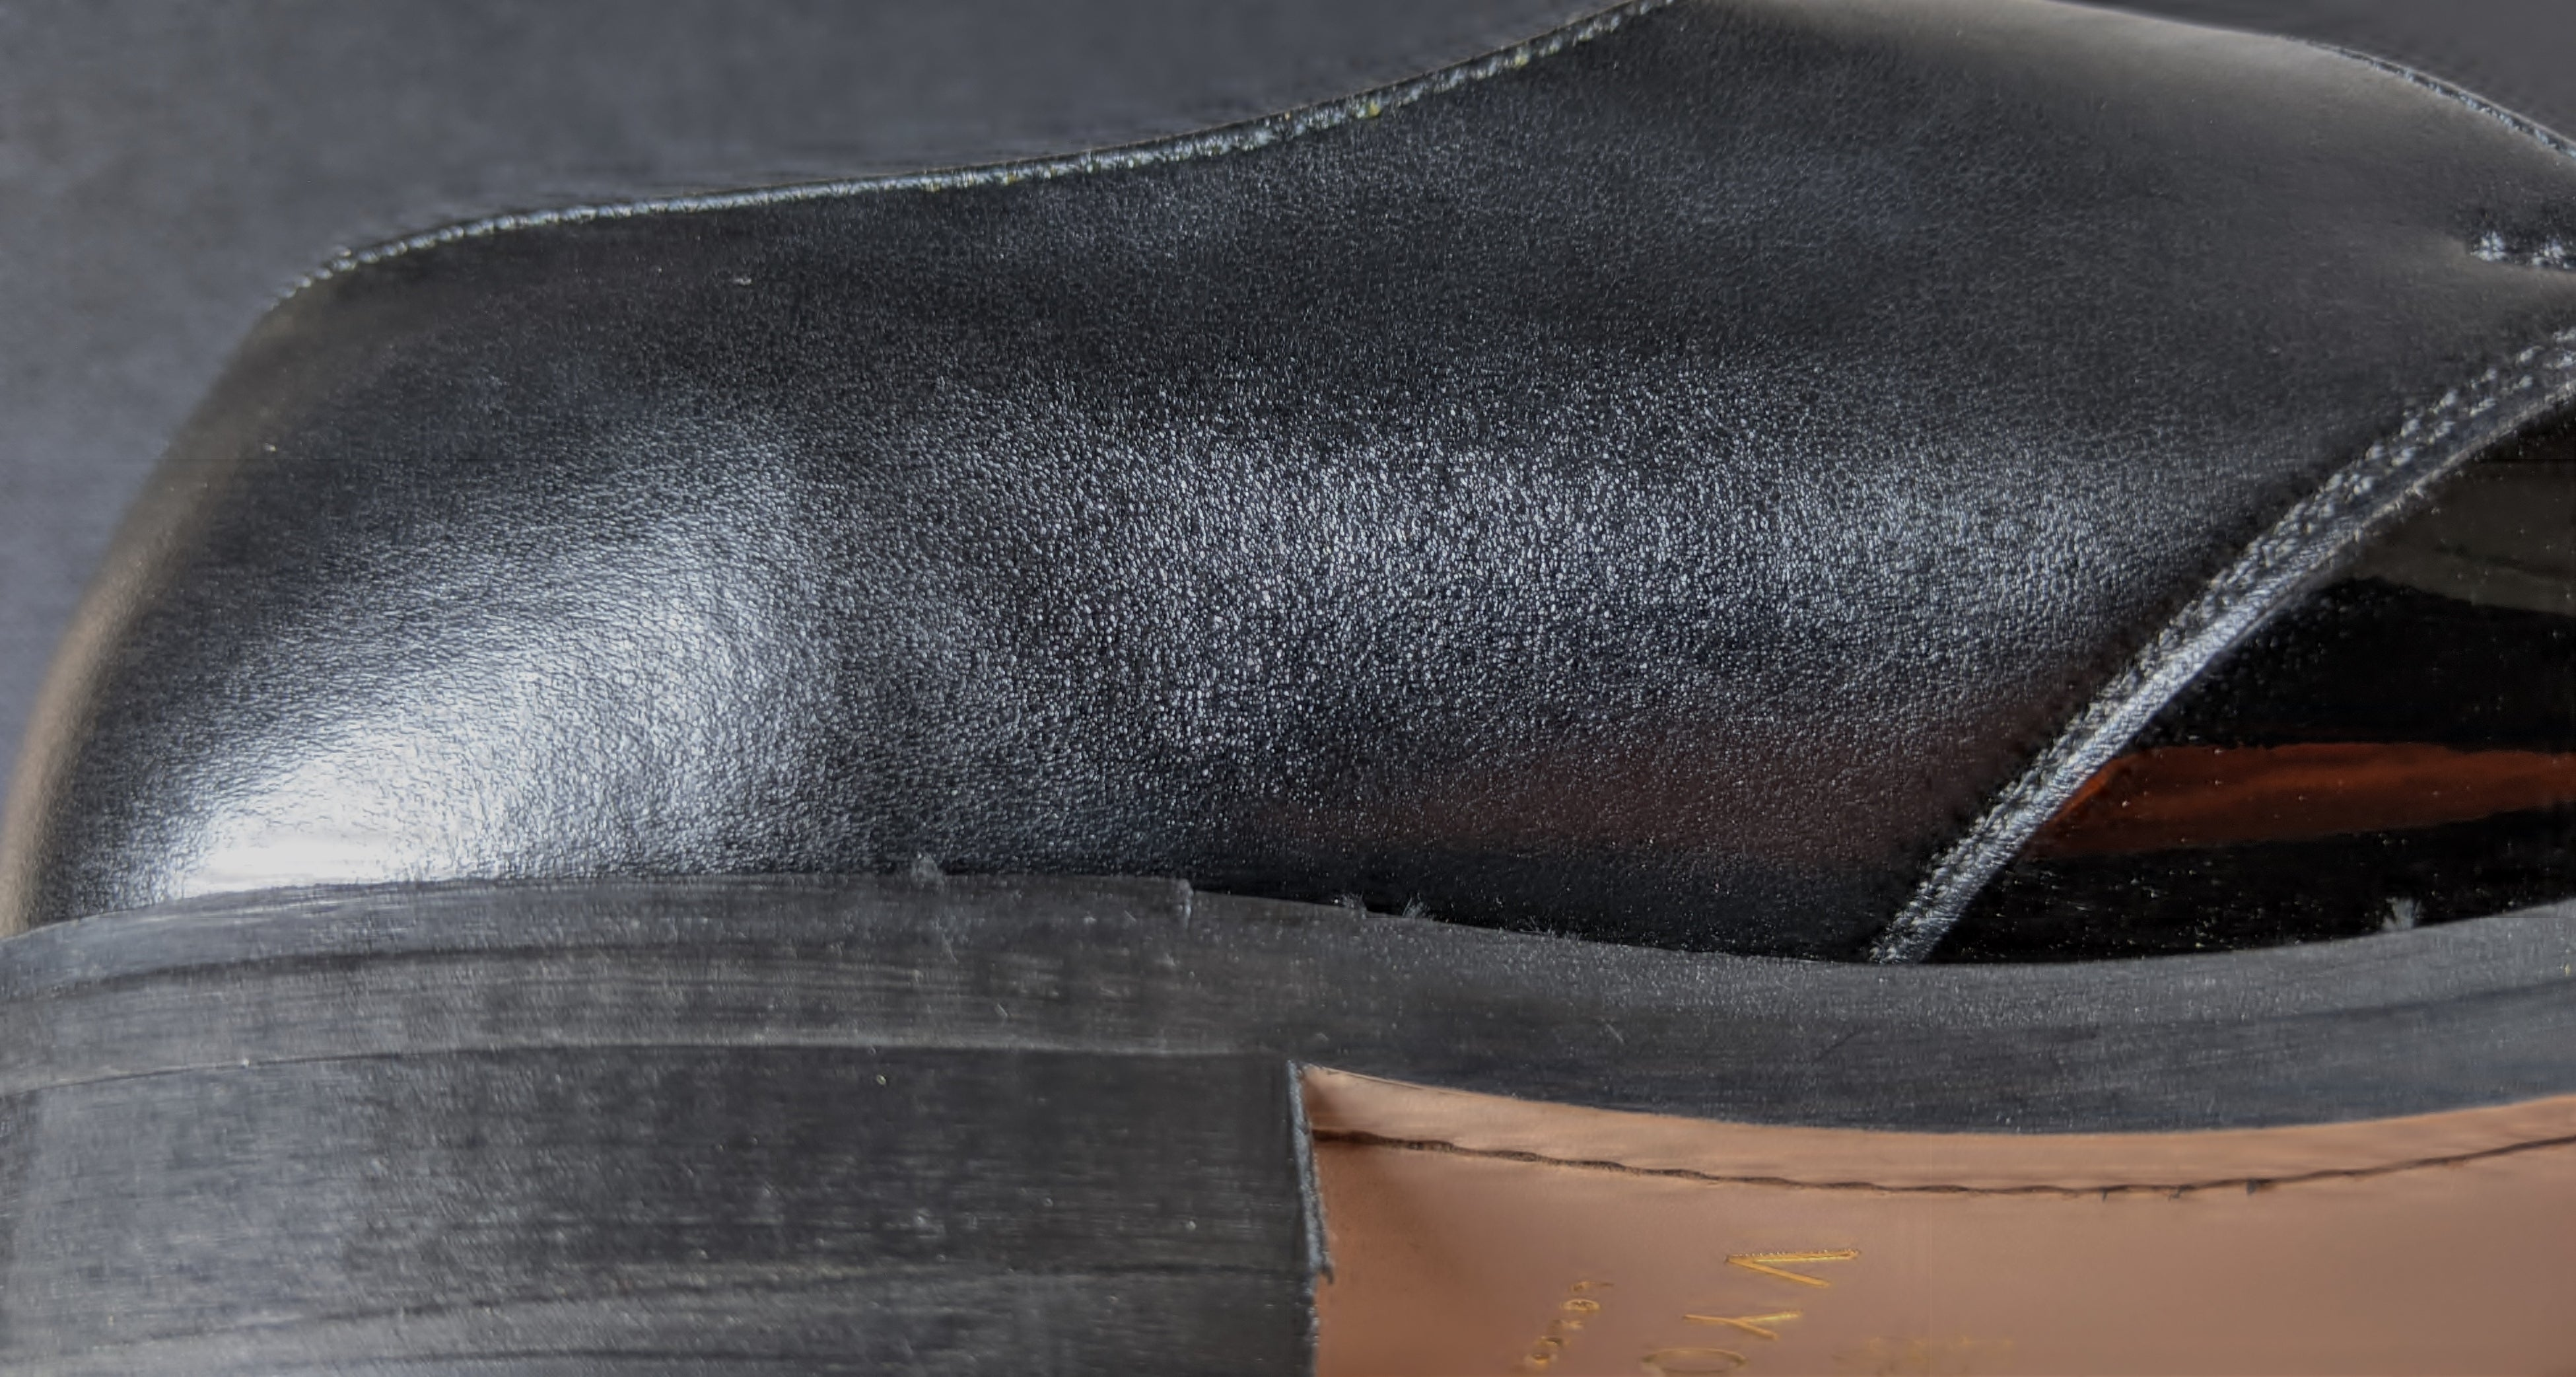 Midnight - Women's Monk Straps (Stitching Anomaly)